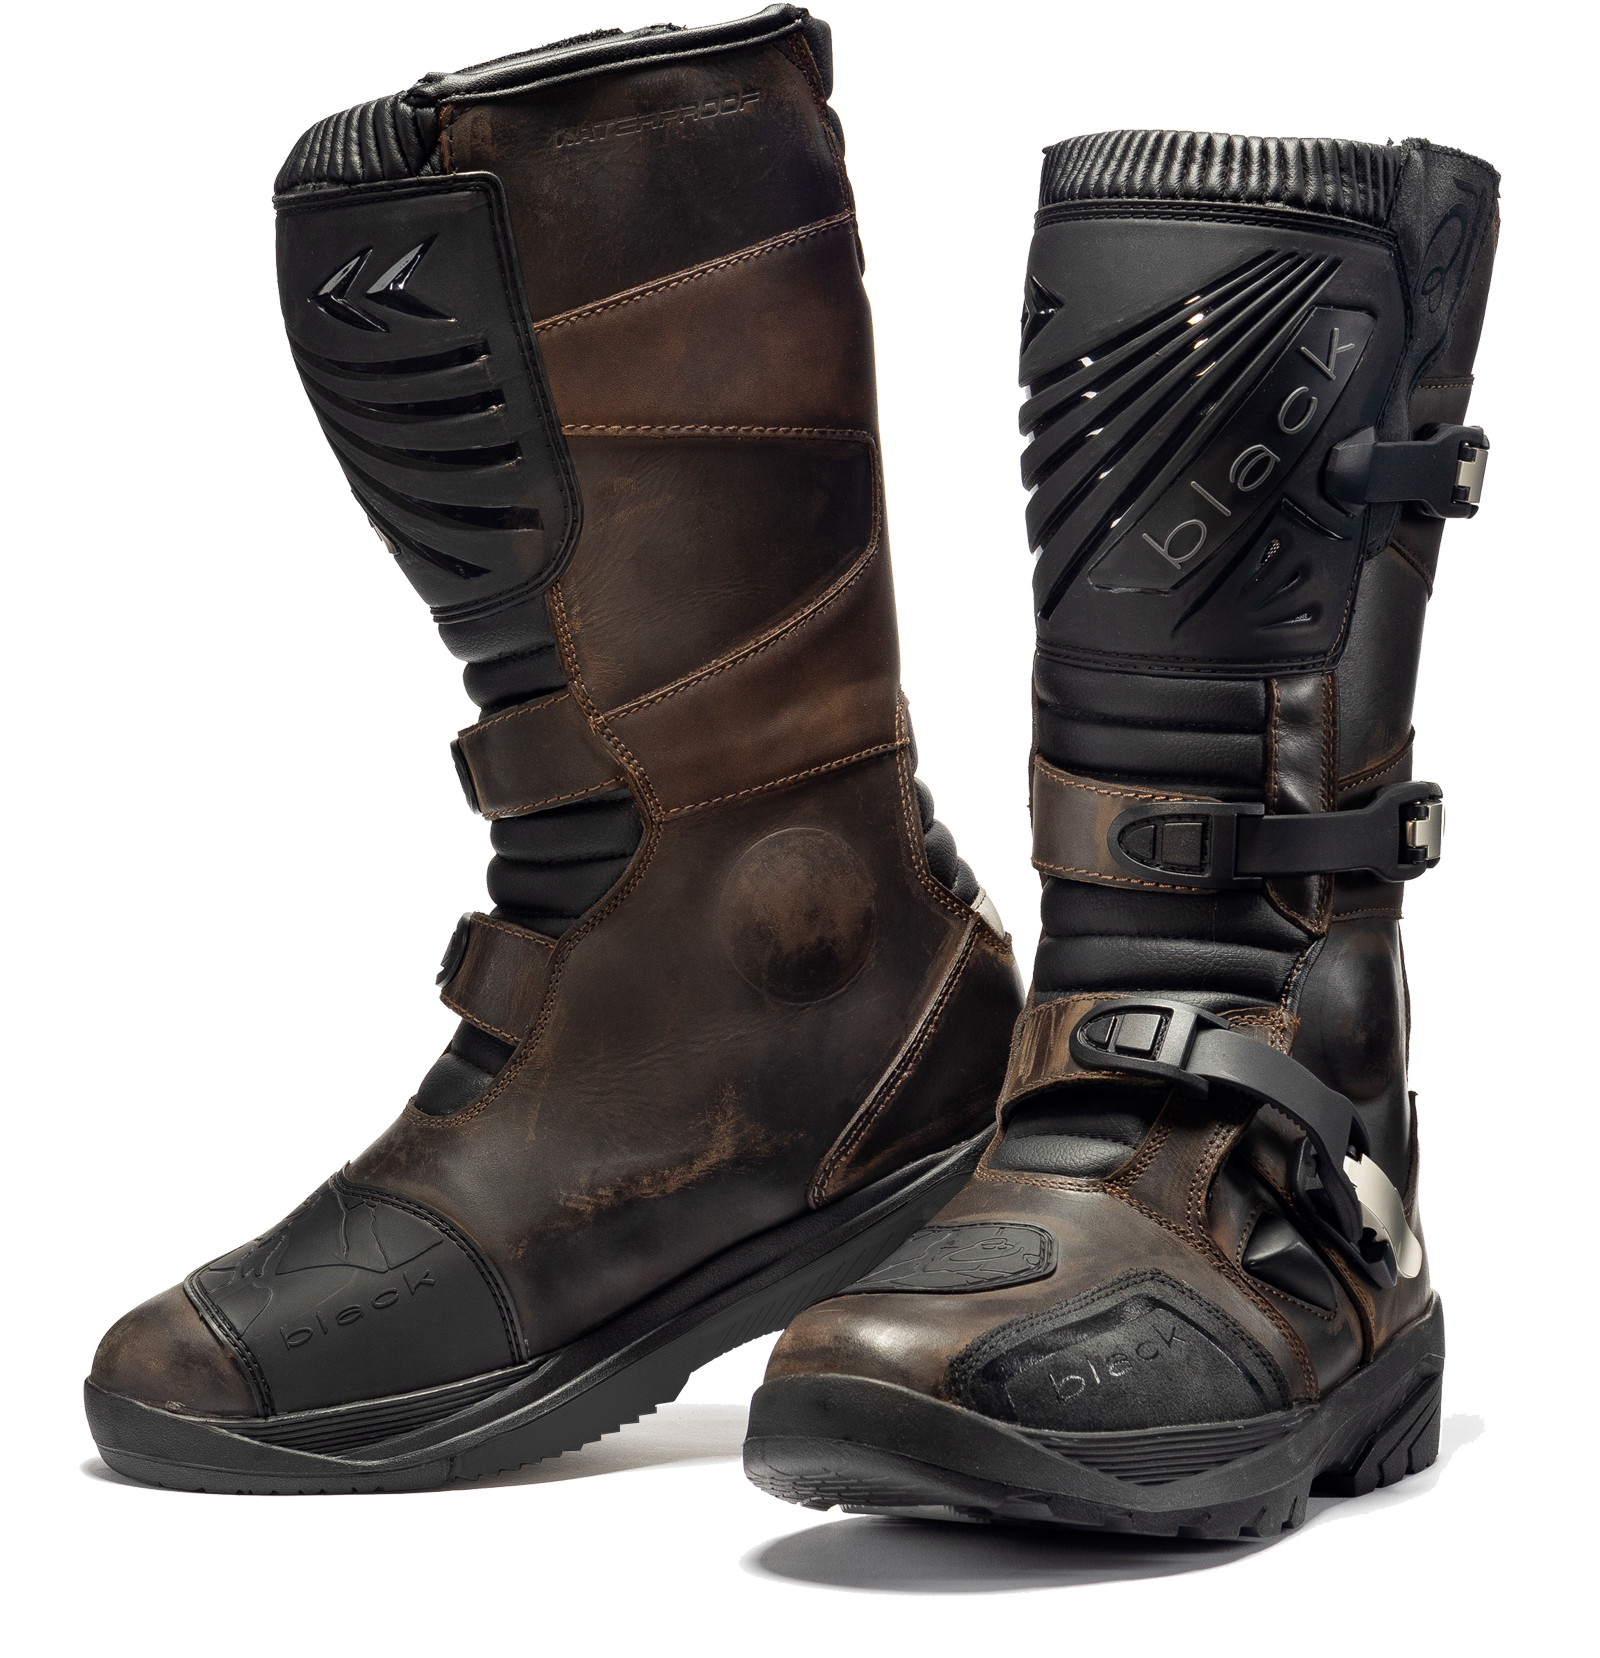 Details about Black Rebel Adventure Waterproof Motorcycle Boots Touring Leather Motorbike